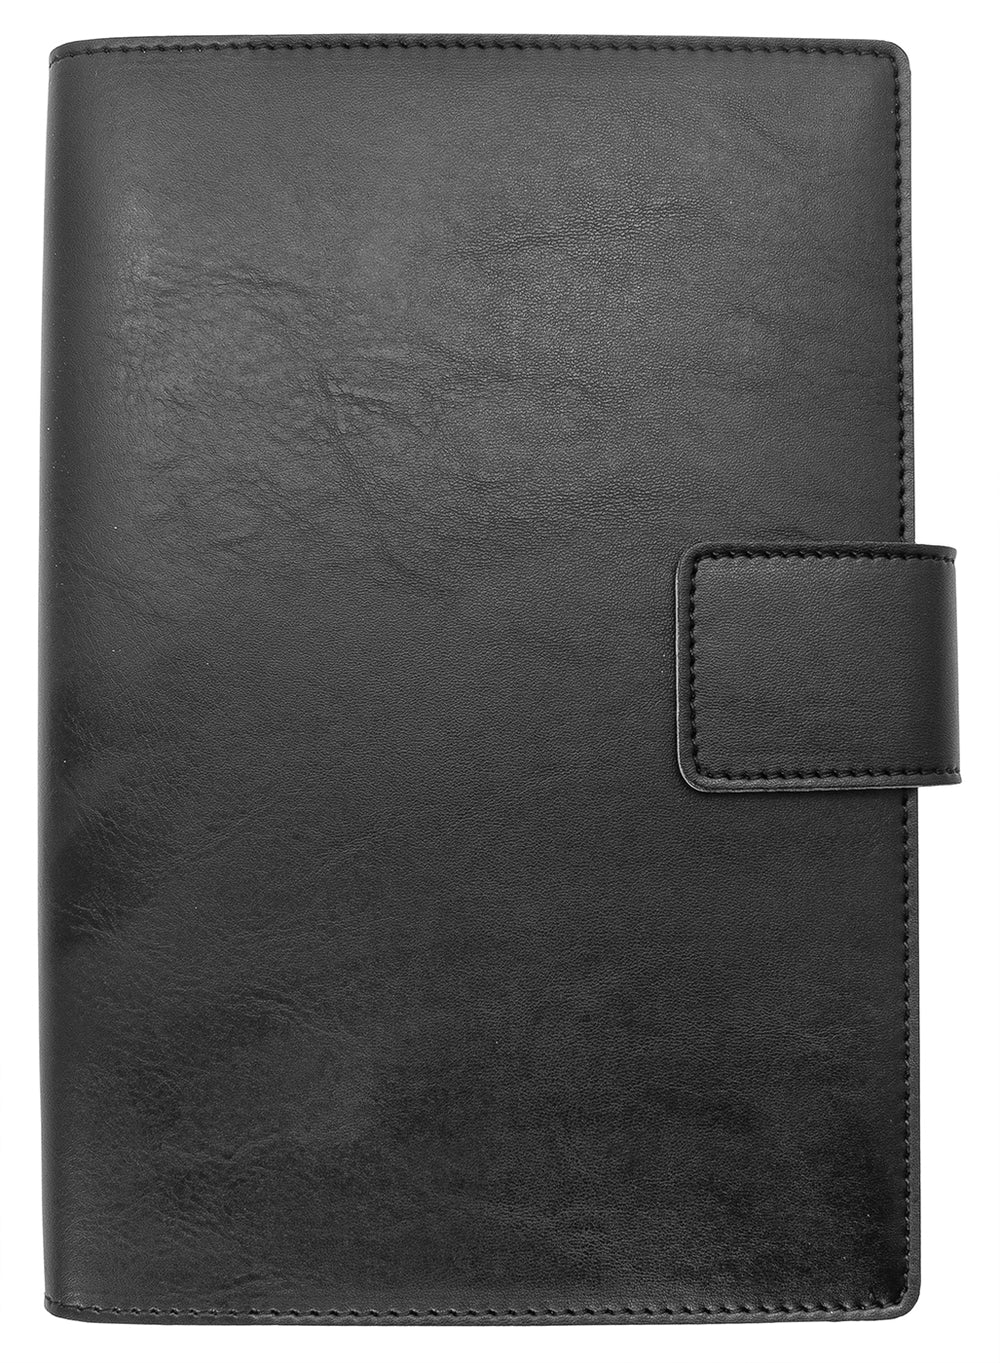 Fiorentina Refillable Bi-Color Snap Journal Black w/ Tan Interior